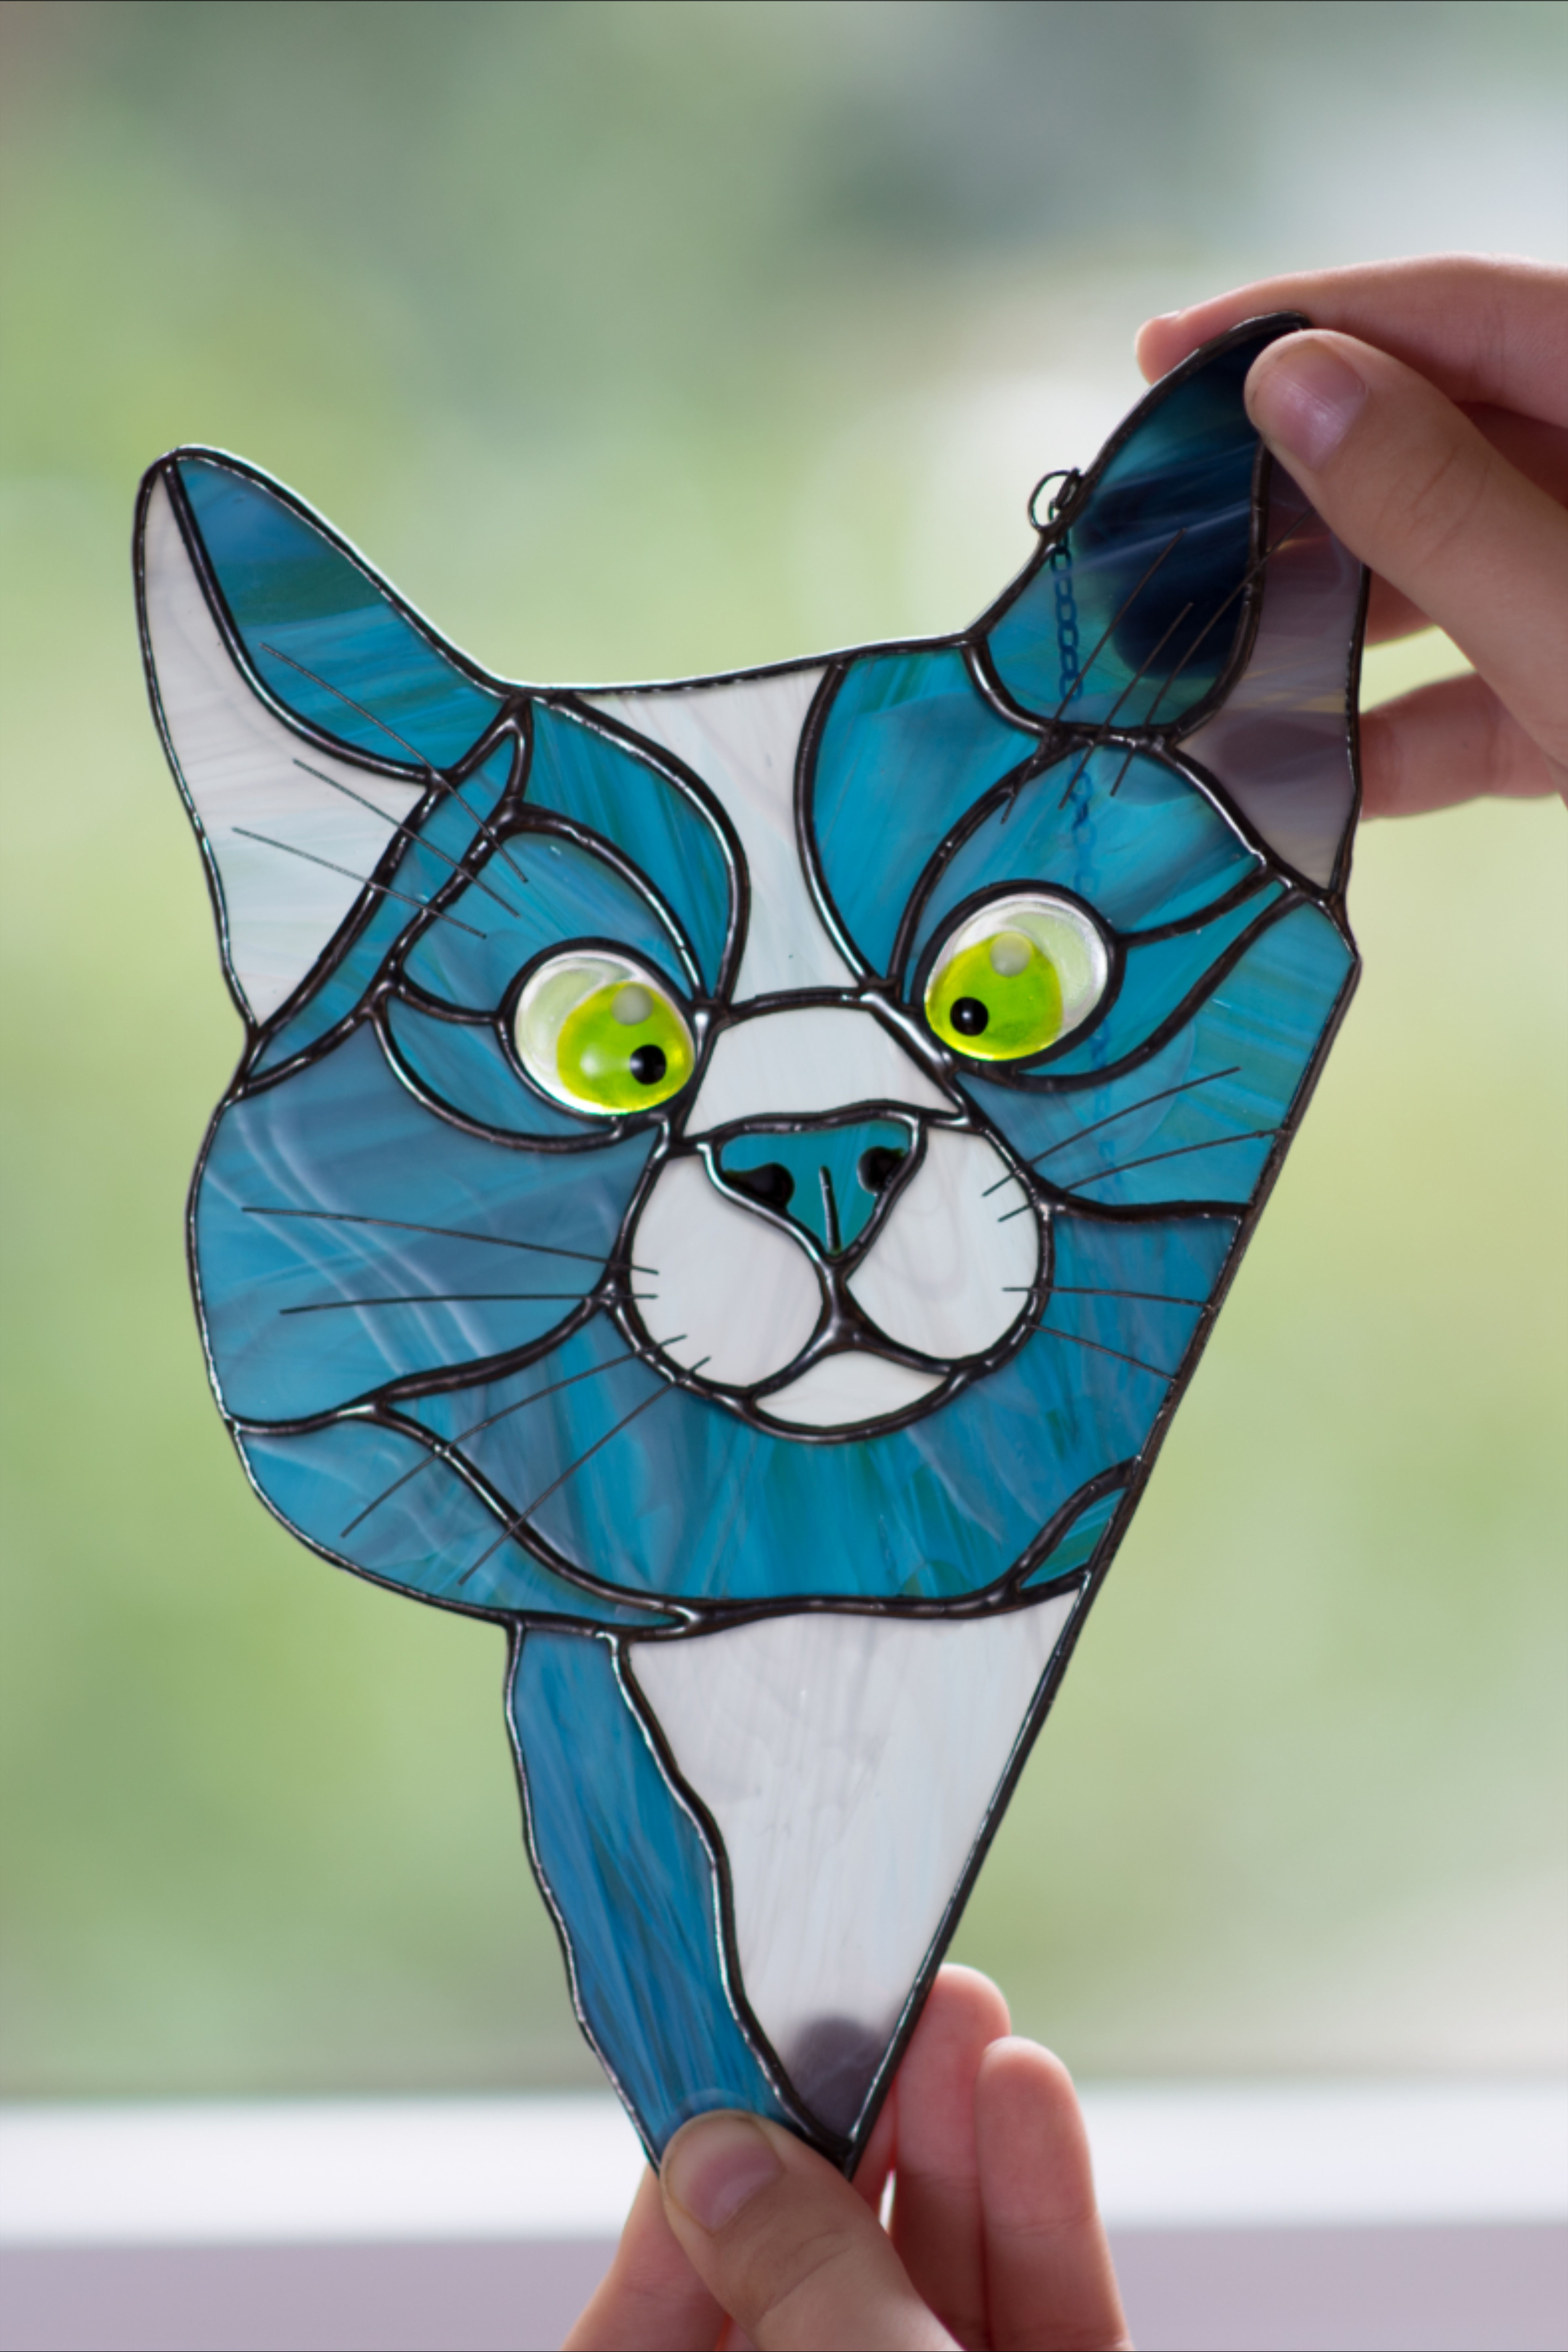 Stained glass Cat and Apples hanging